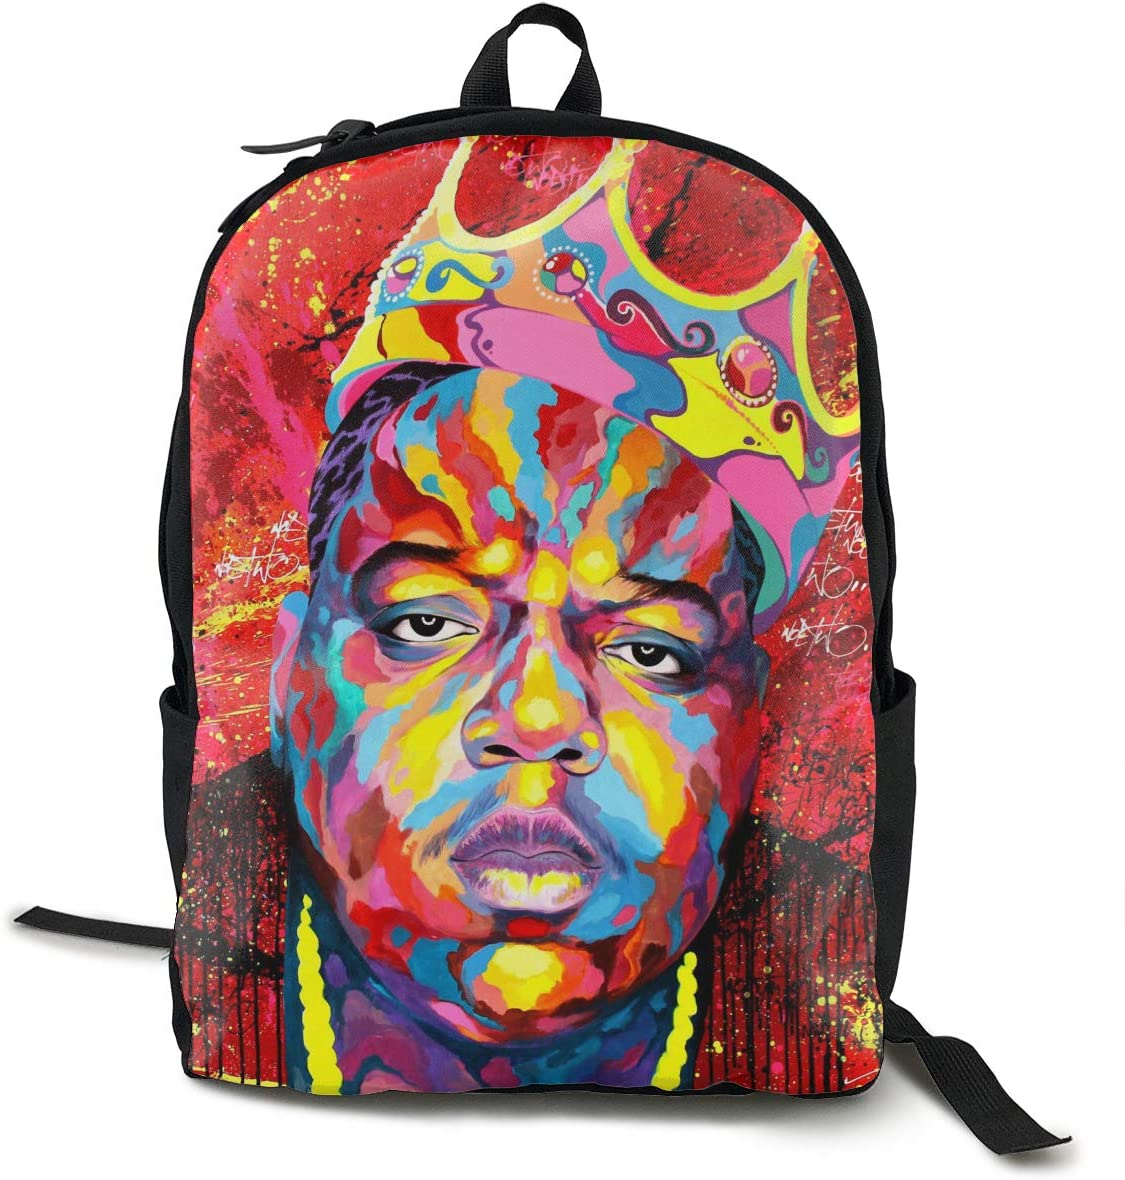 The Notorious B.I.G Unisex Backpack Hiking Backpack Travel Sports Bag College Bags